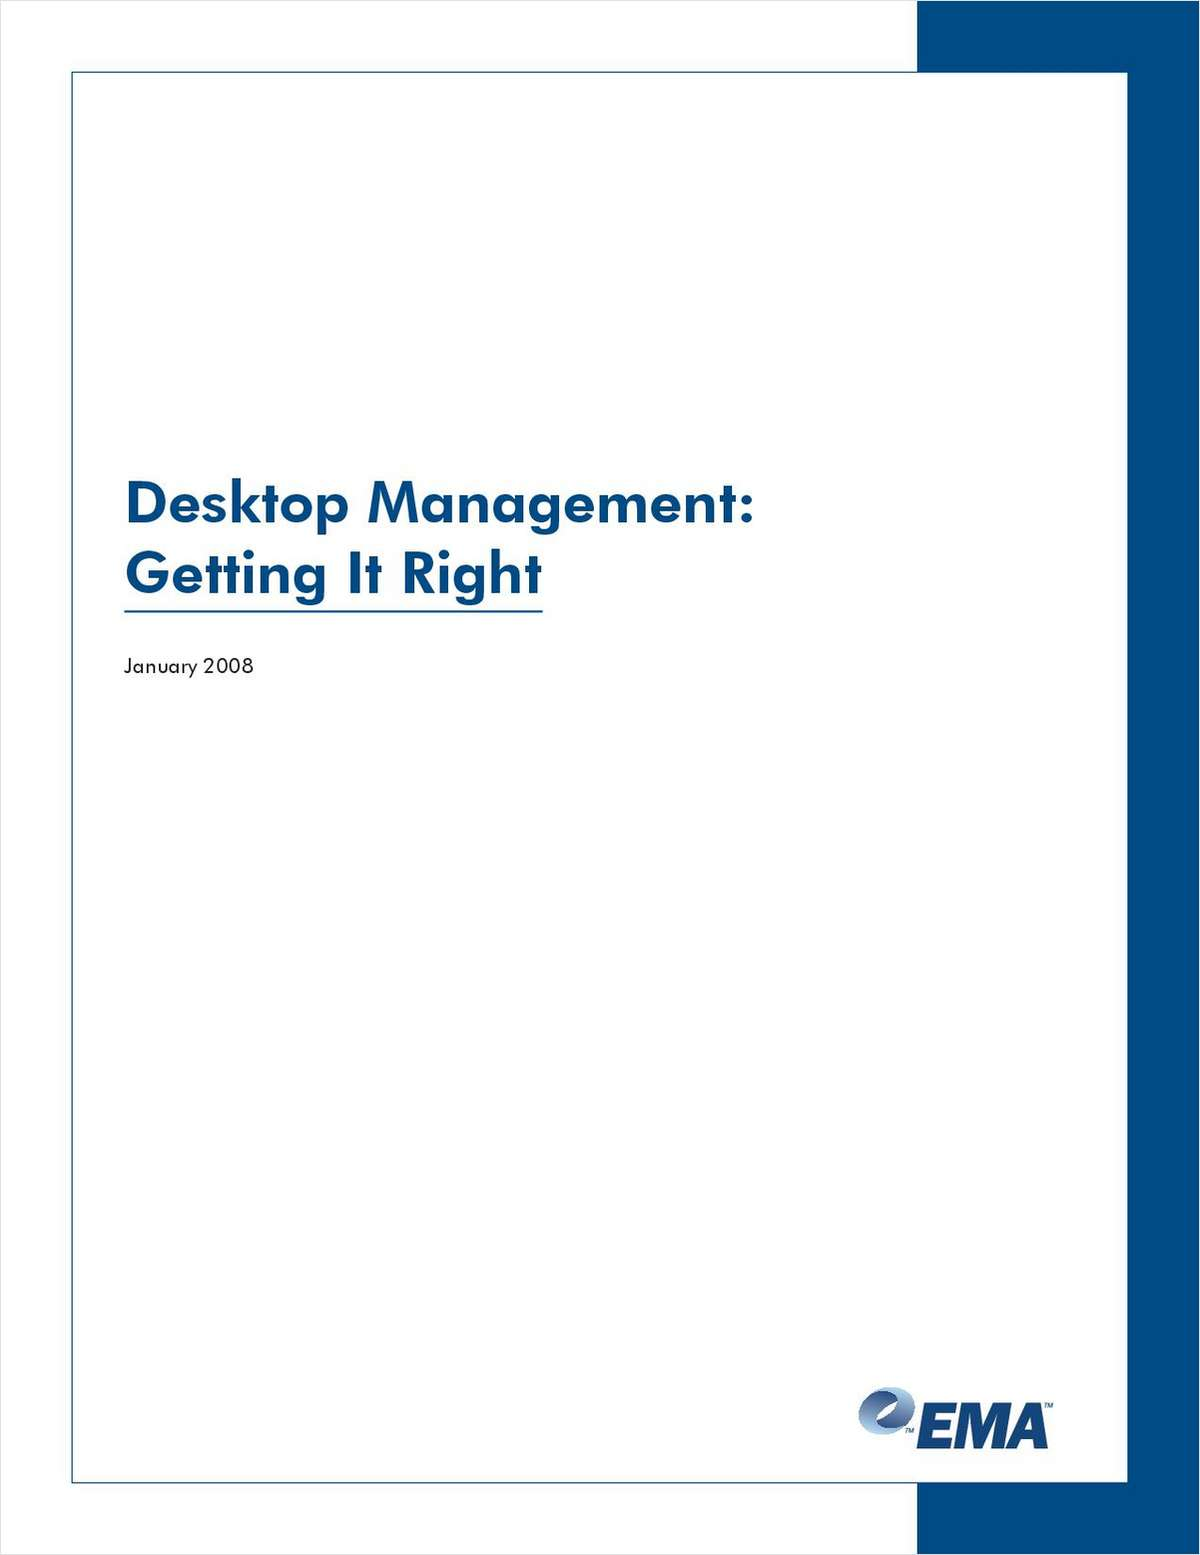 Desktop Management: Getting It Right